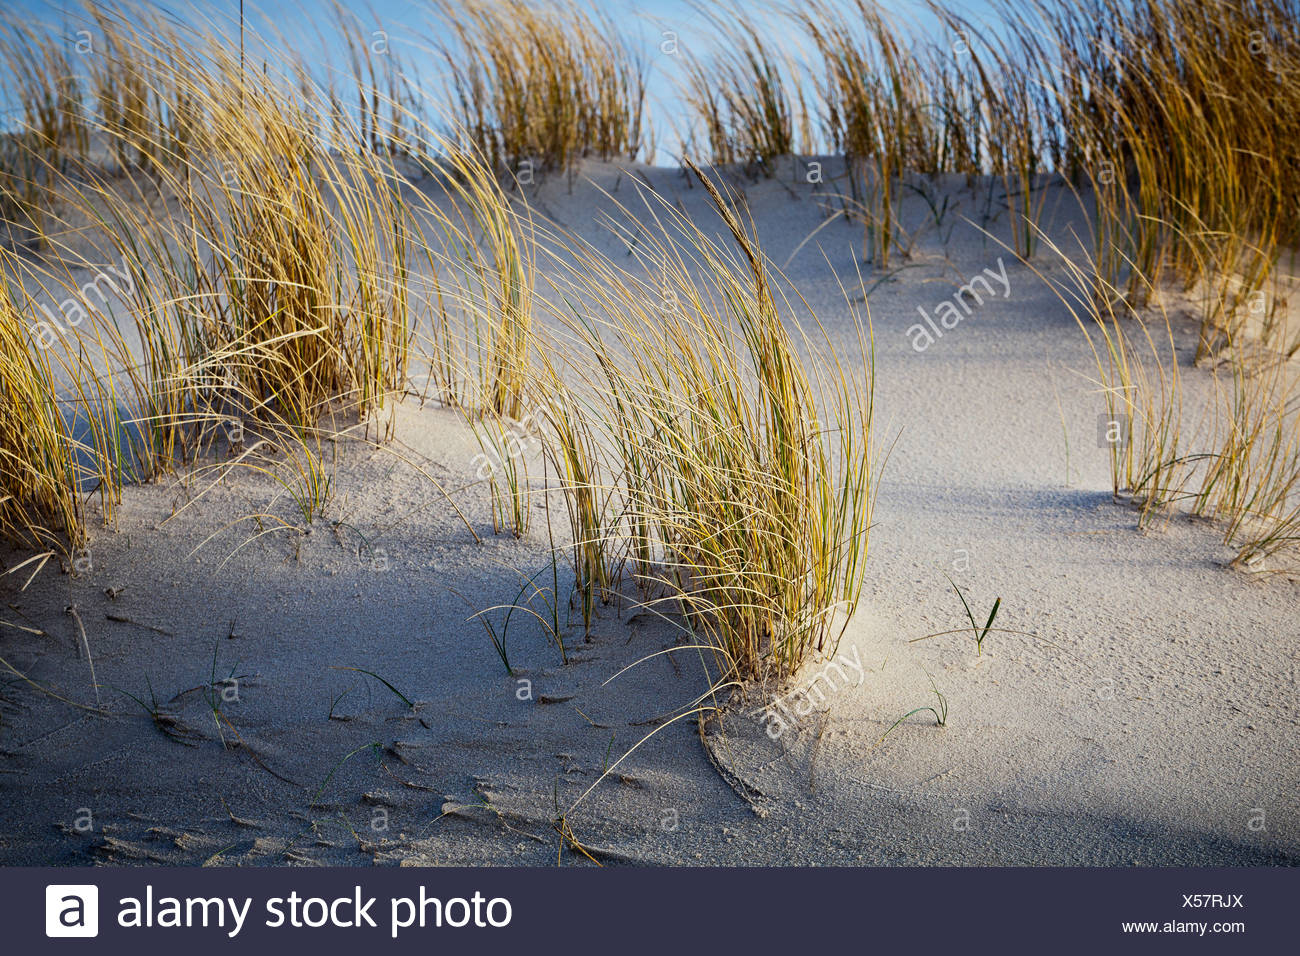 Dune grass, Sylt, Schleswig-Holstein, Germany, Europe - Stock Image